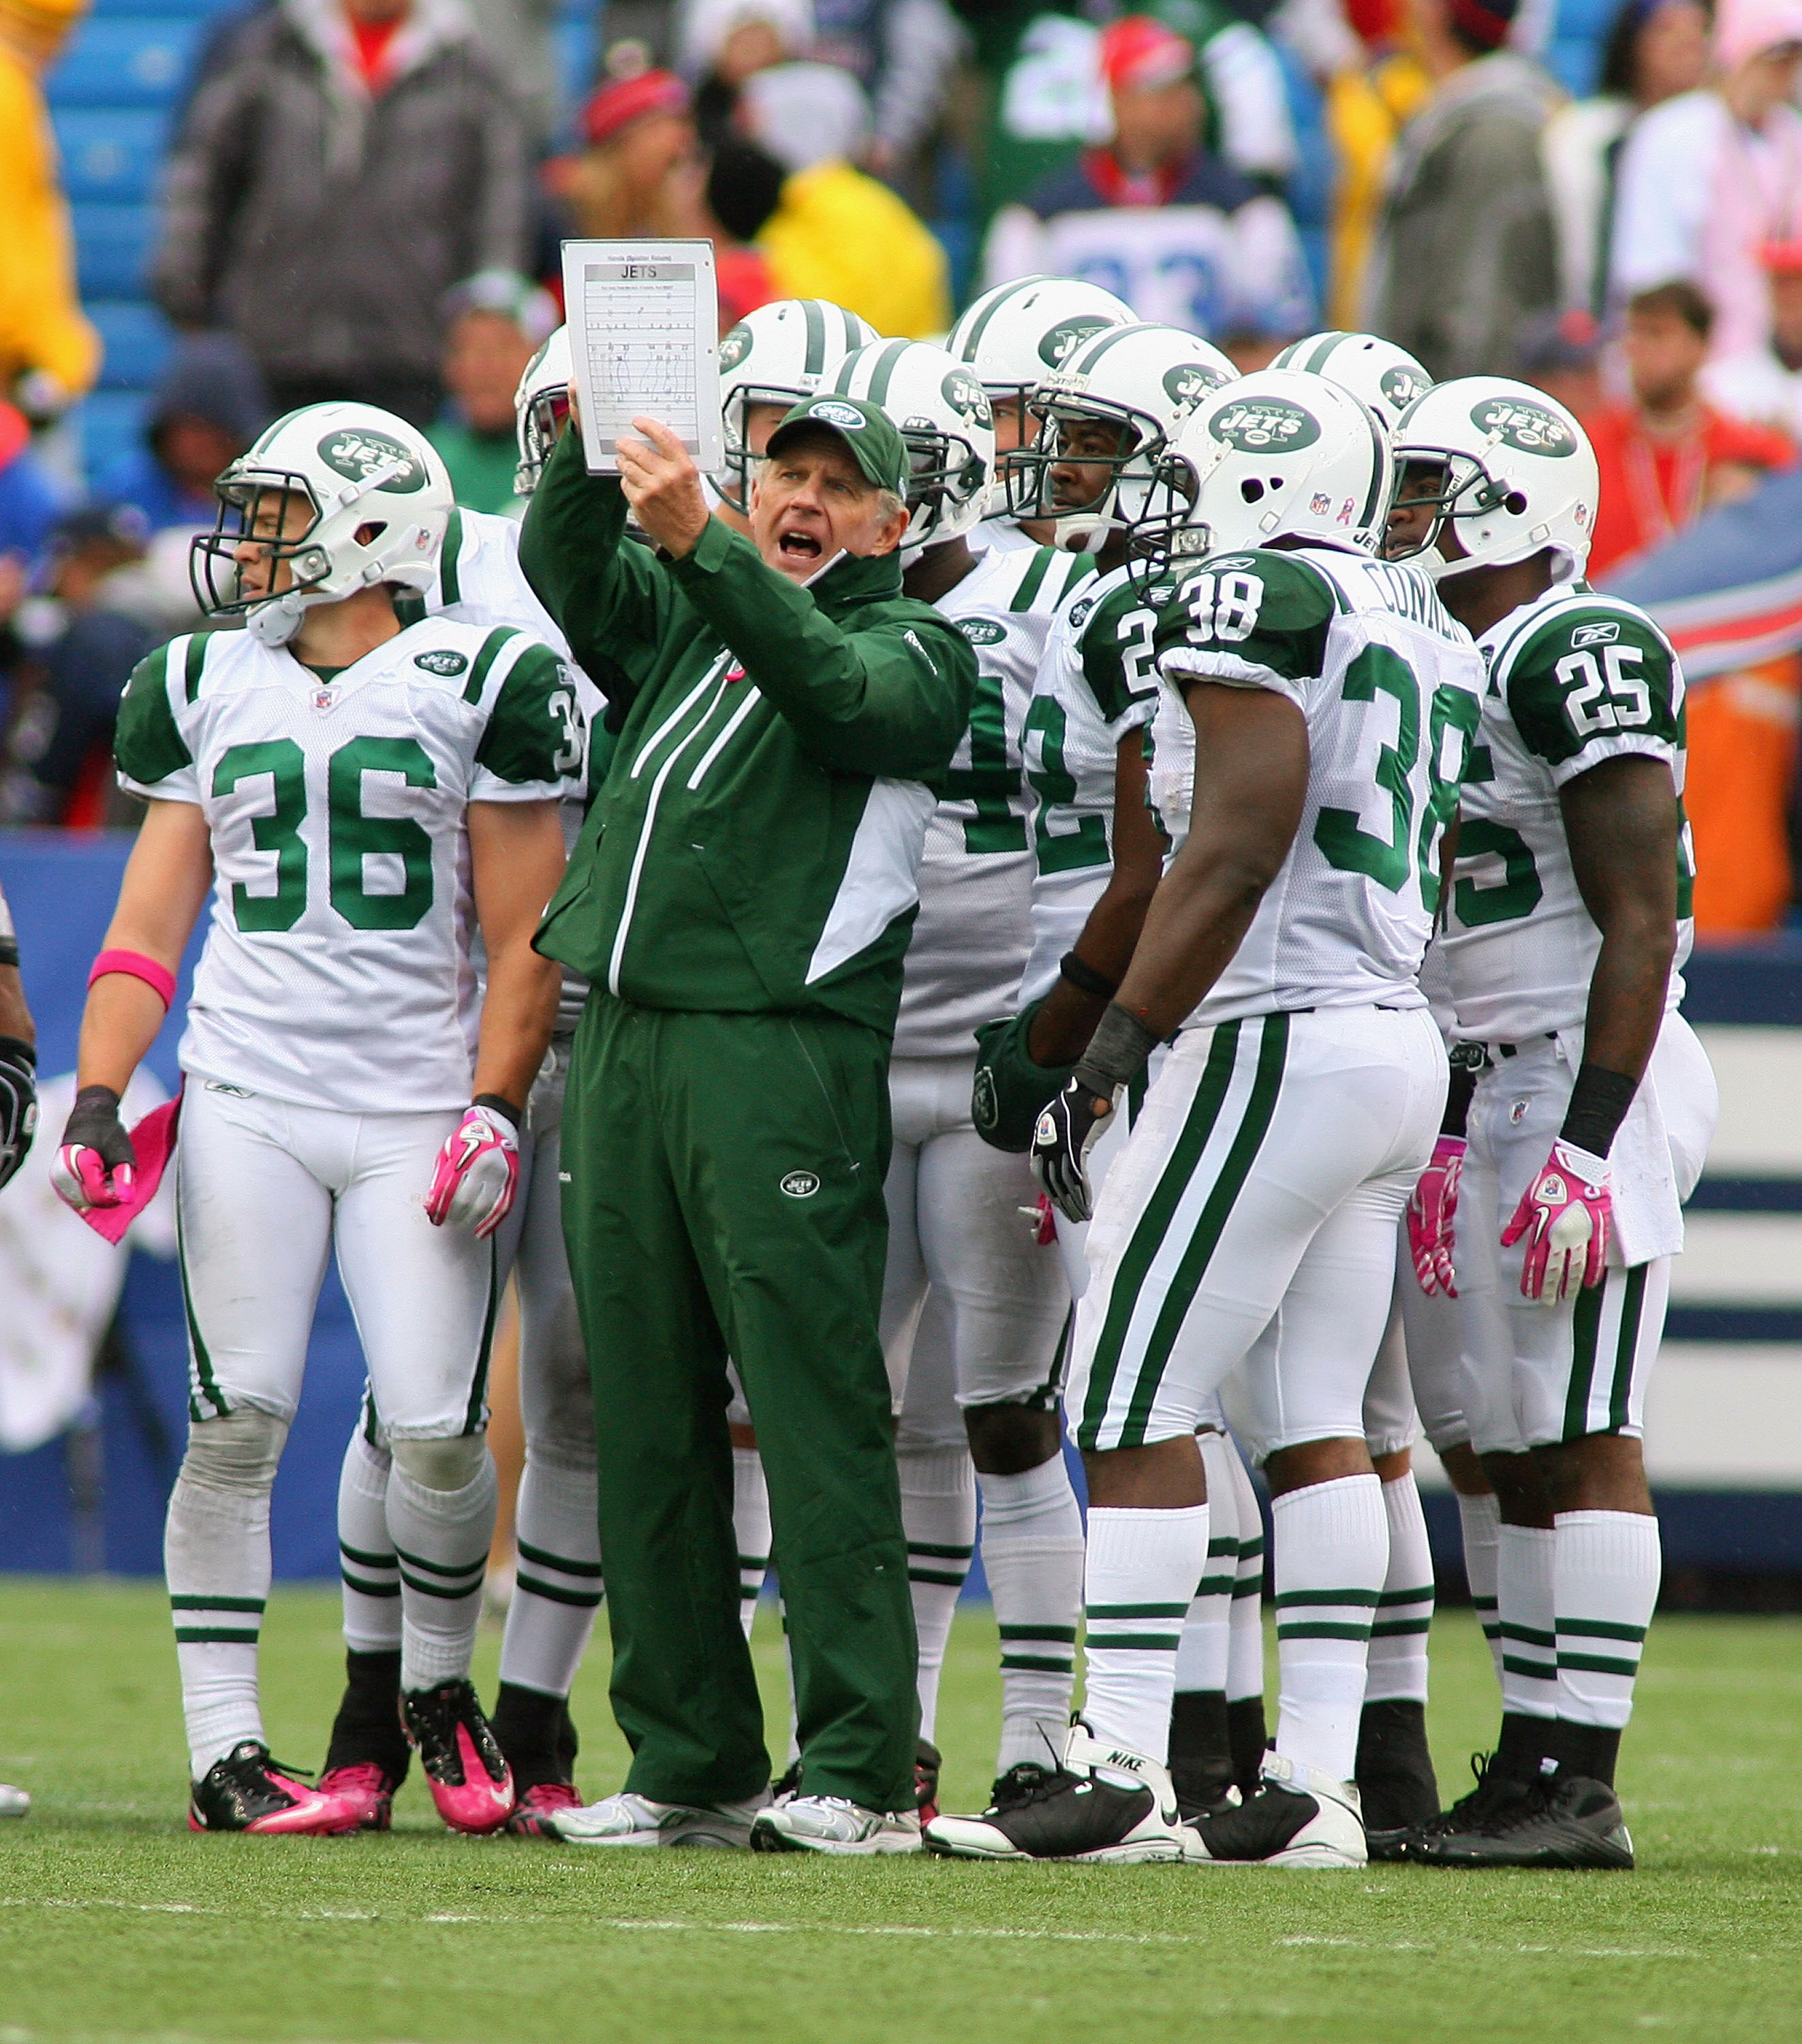 ORCHARD PARK, NY - OCTOBER 03: Mike Westhoff, Special Teams Coordinator of the New York Jets talks to his players during a time out against  the Buffalo Bills at Ralph Wilson Stadium on October 3, 2010 in Orchard Park, New York. The Jets won 38-14. (Photo